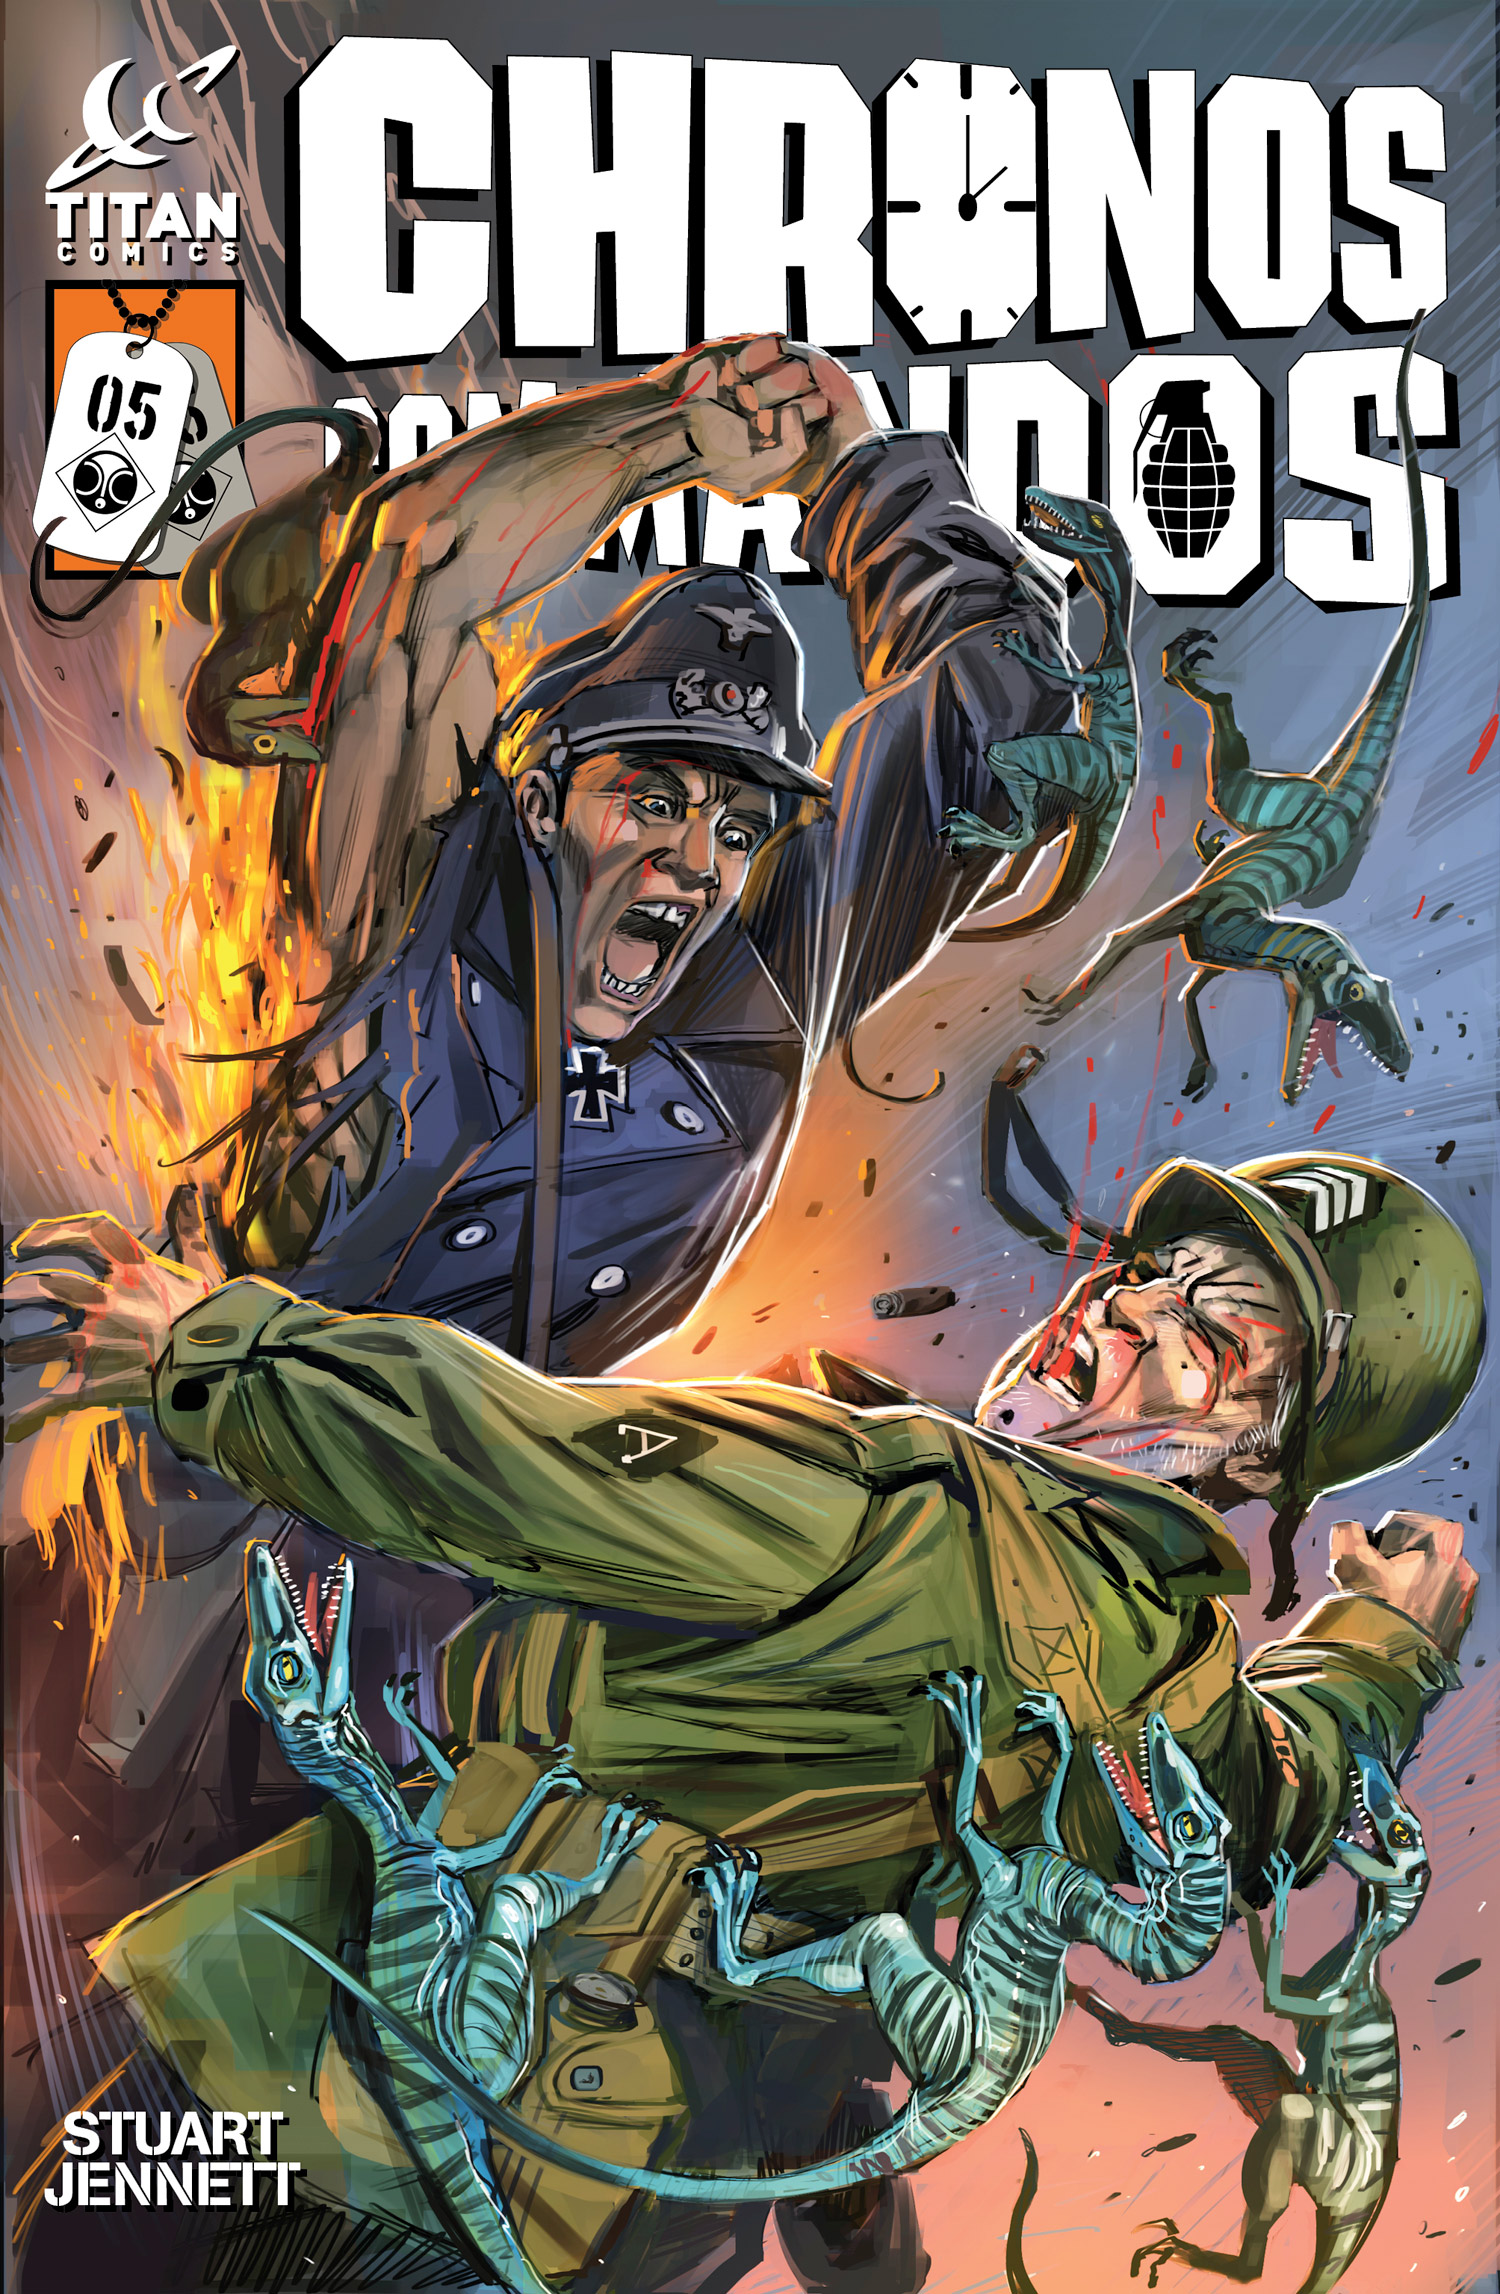 Titan Comics Previews: Chronos Commandos: Dawn Patrol #5 On Sale 11